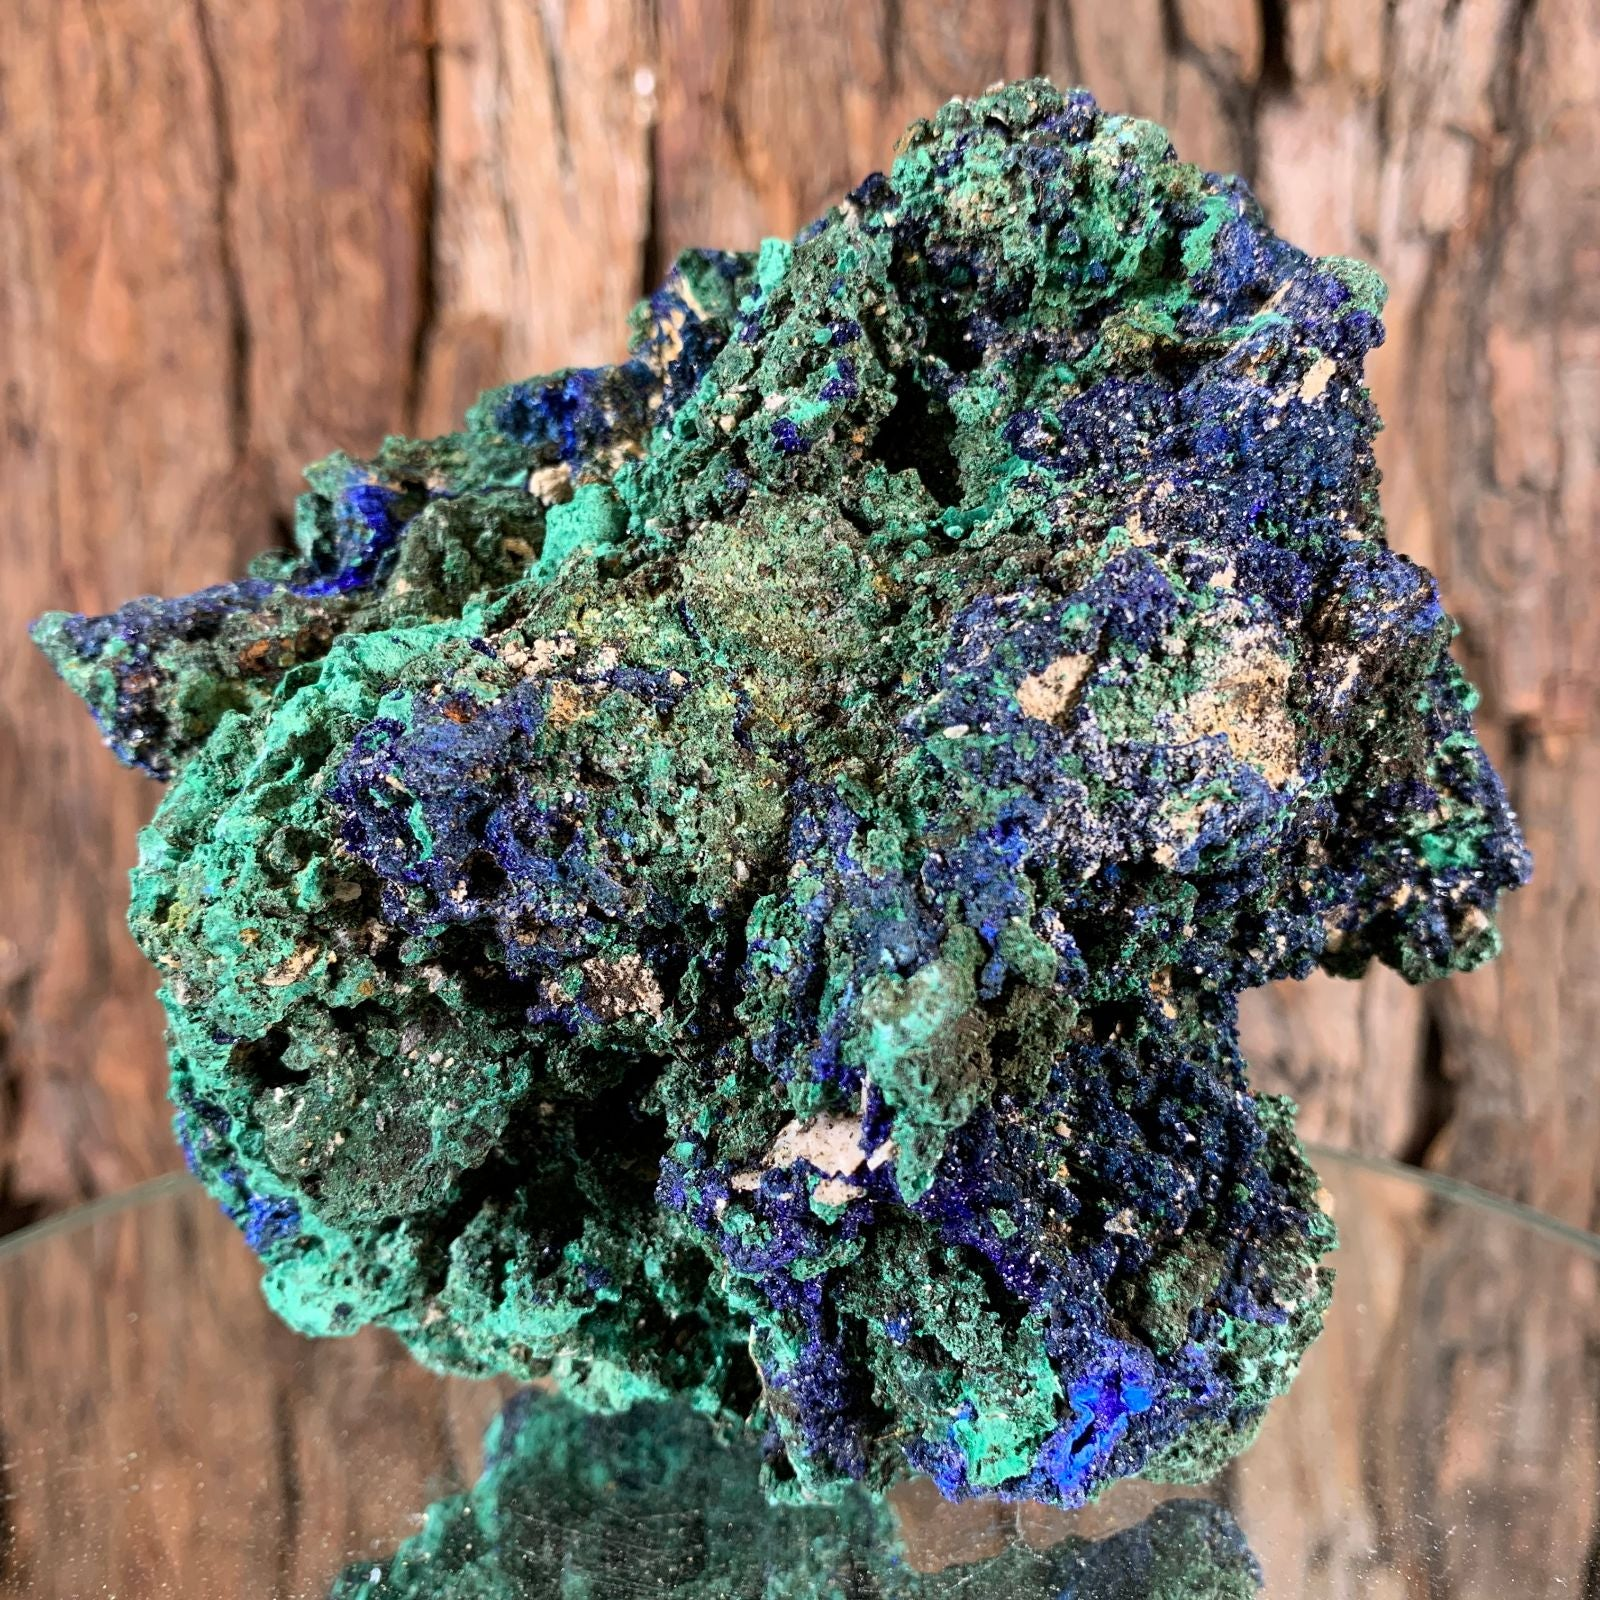 12cm 764g Azurite from Sepon Mine, Laos